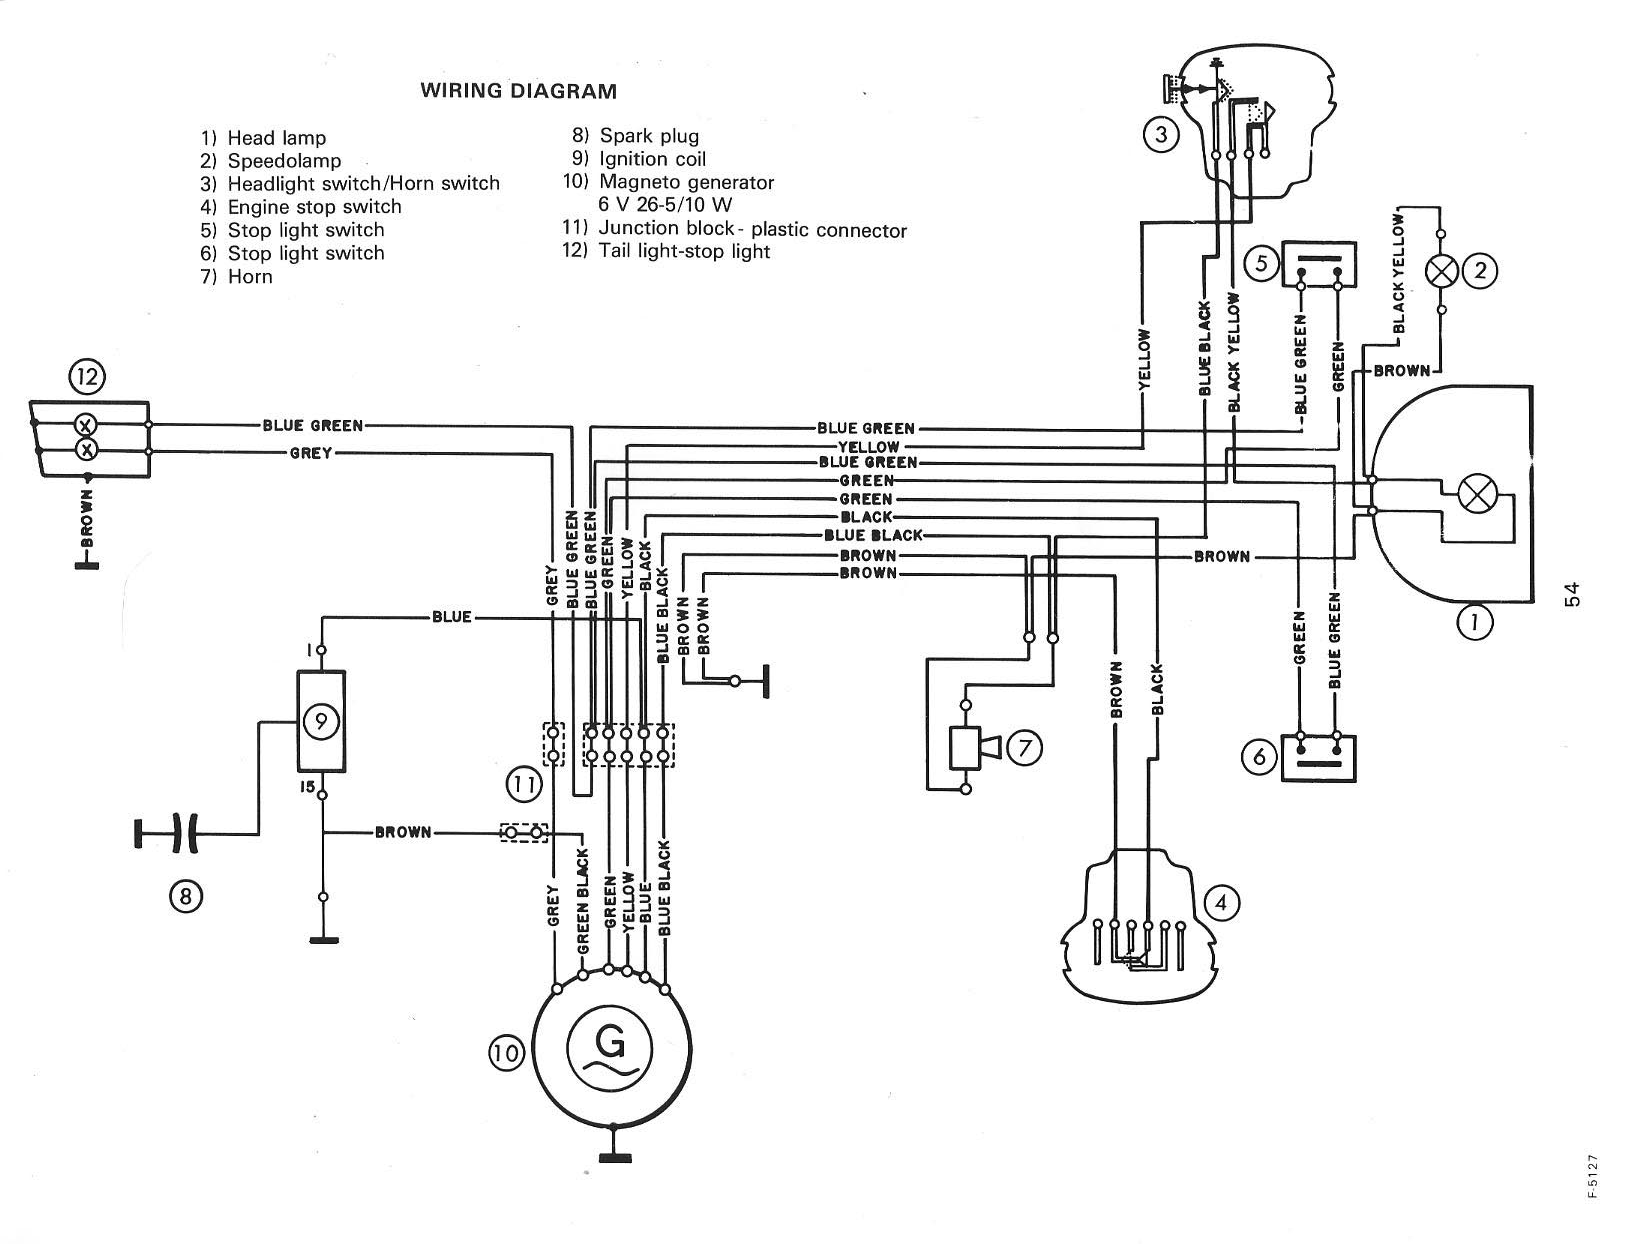 12 5 Hp Murray Riding Lawn Mower Wiring Diagram Ignition 30 Images Puch Diagrams Moped Wiki Switch At